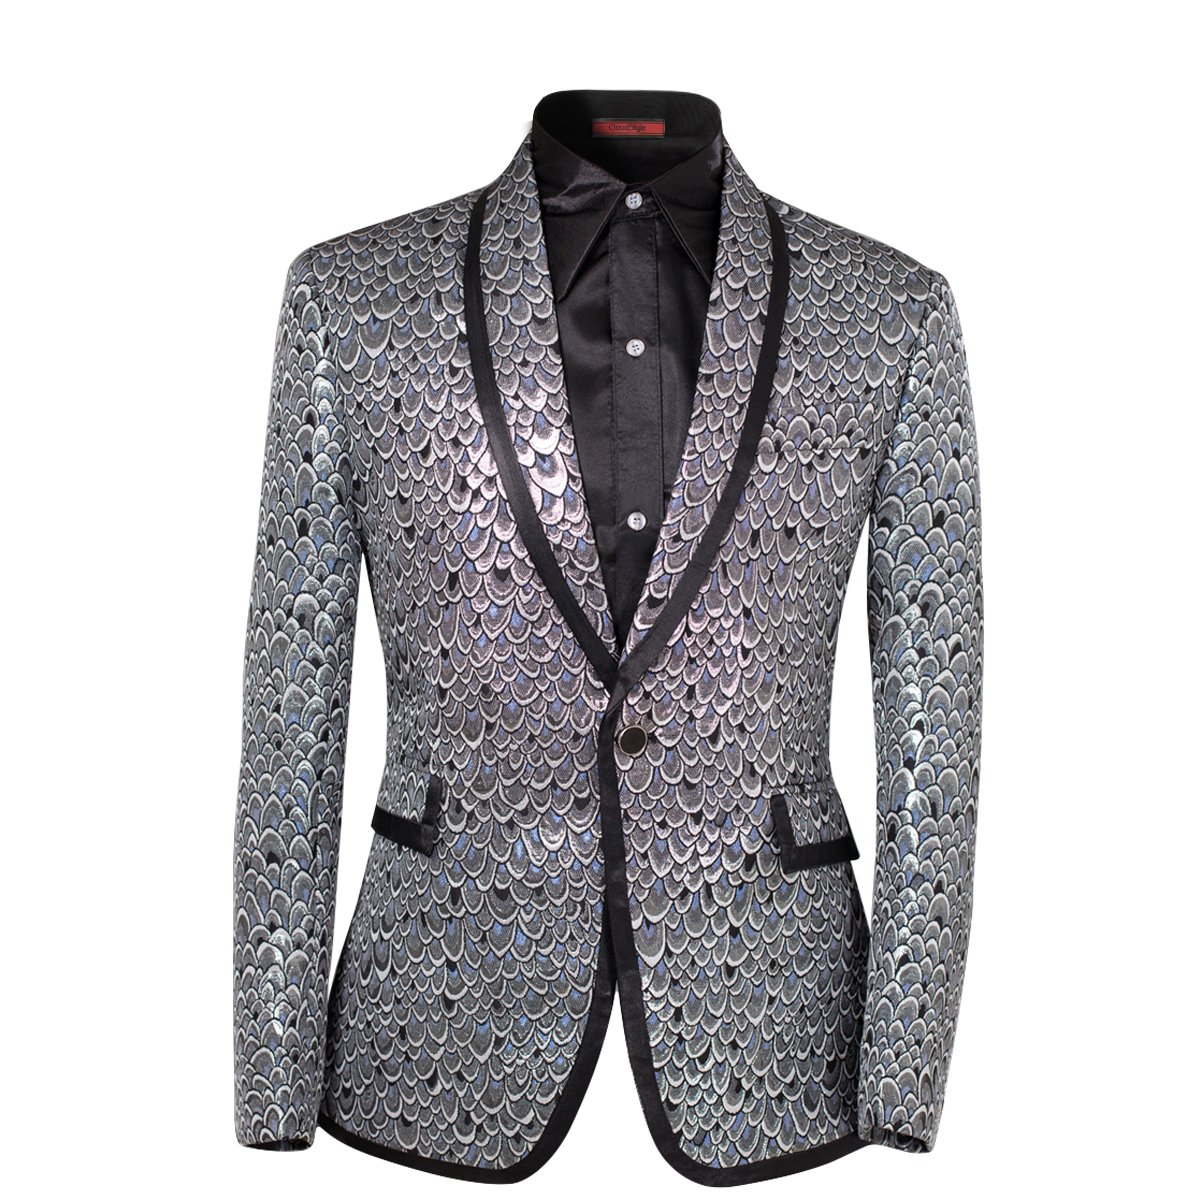 Cloudstyle Men's 2 Piece Suit Single Breasted One-Button Shawl Collar Tuxedo Pants Set WT0024